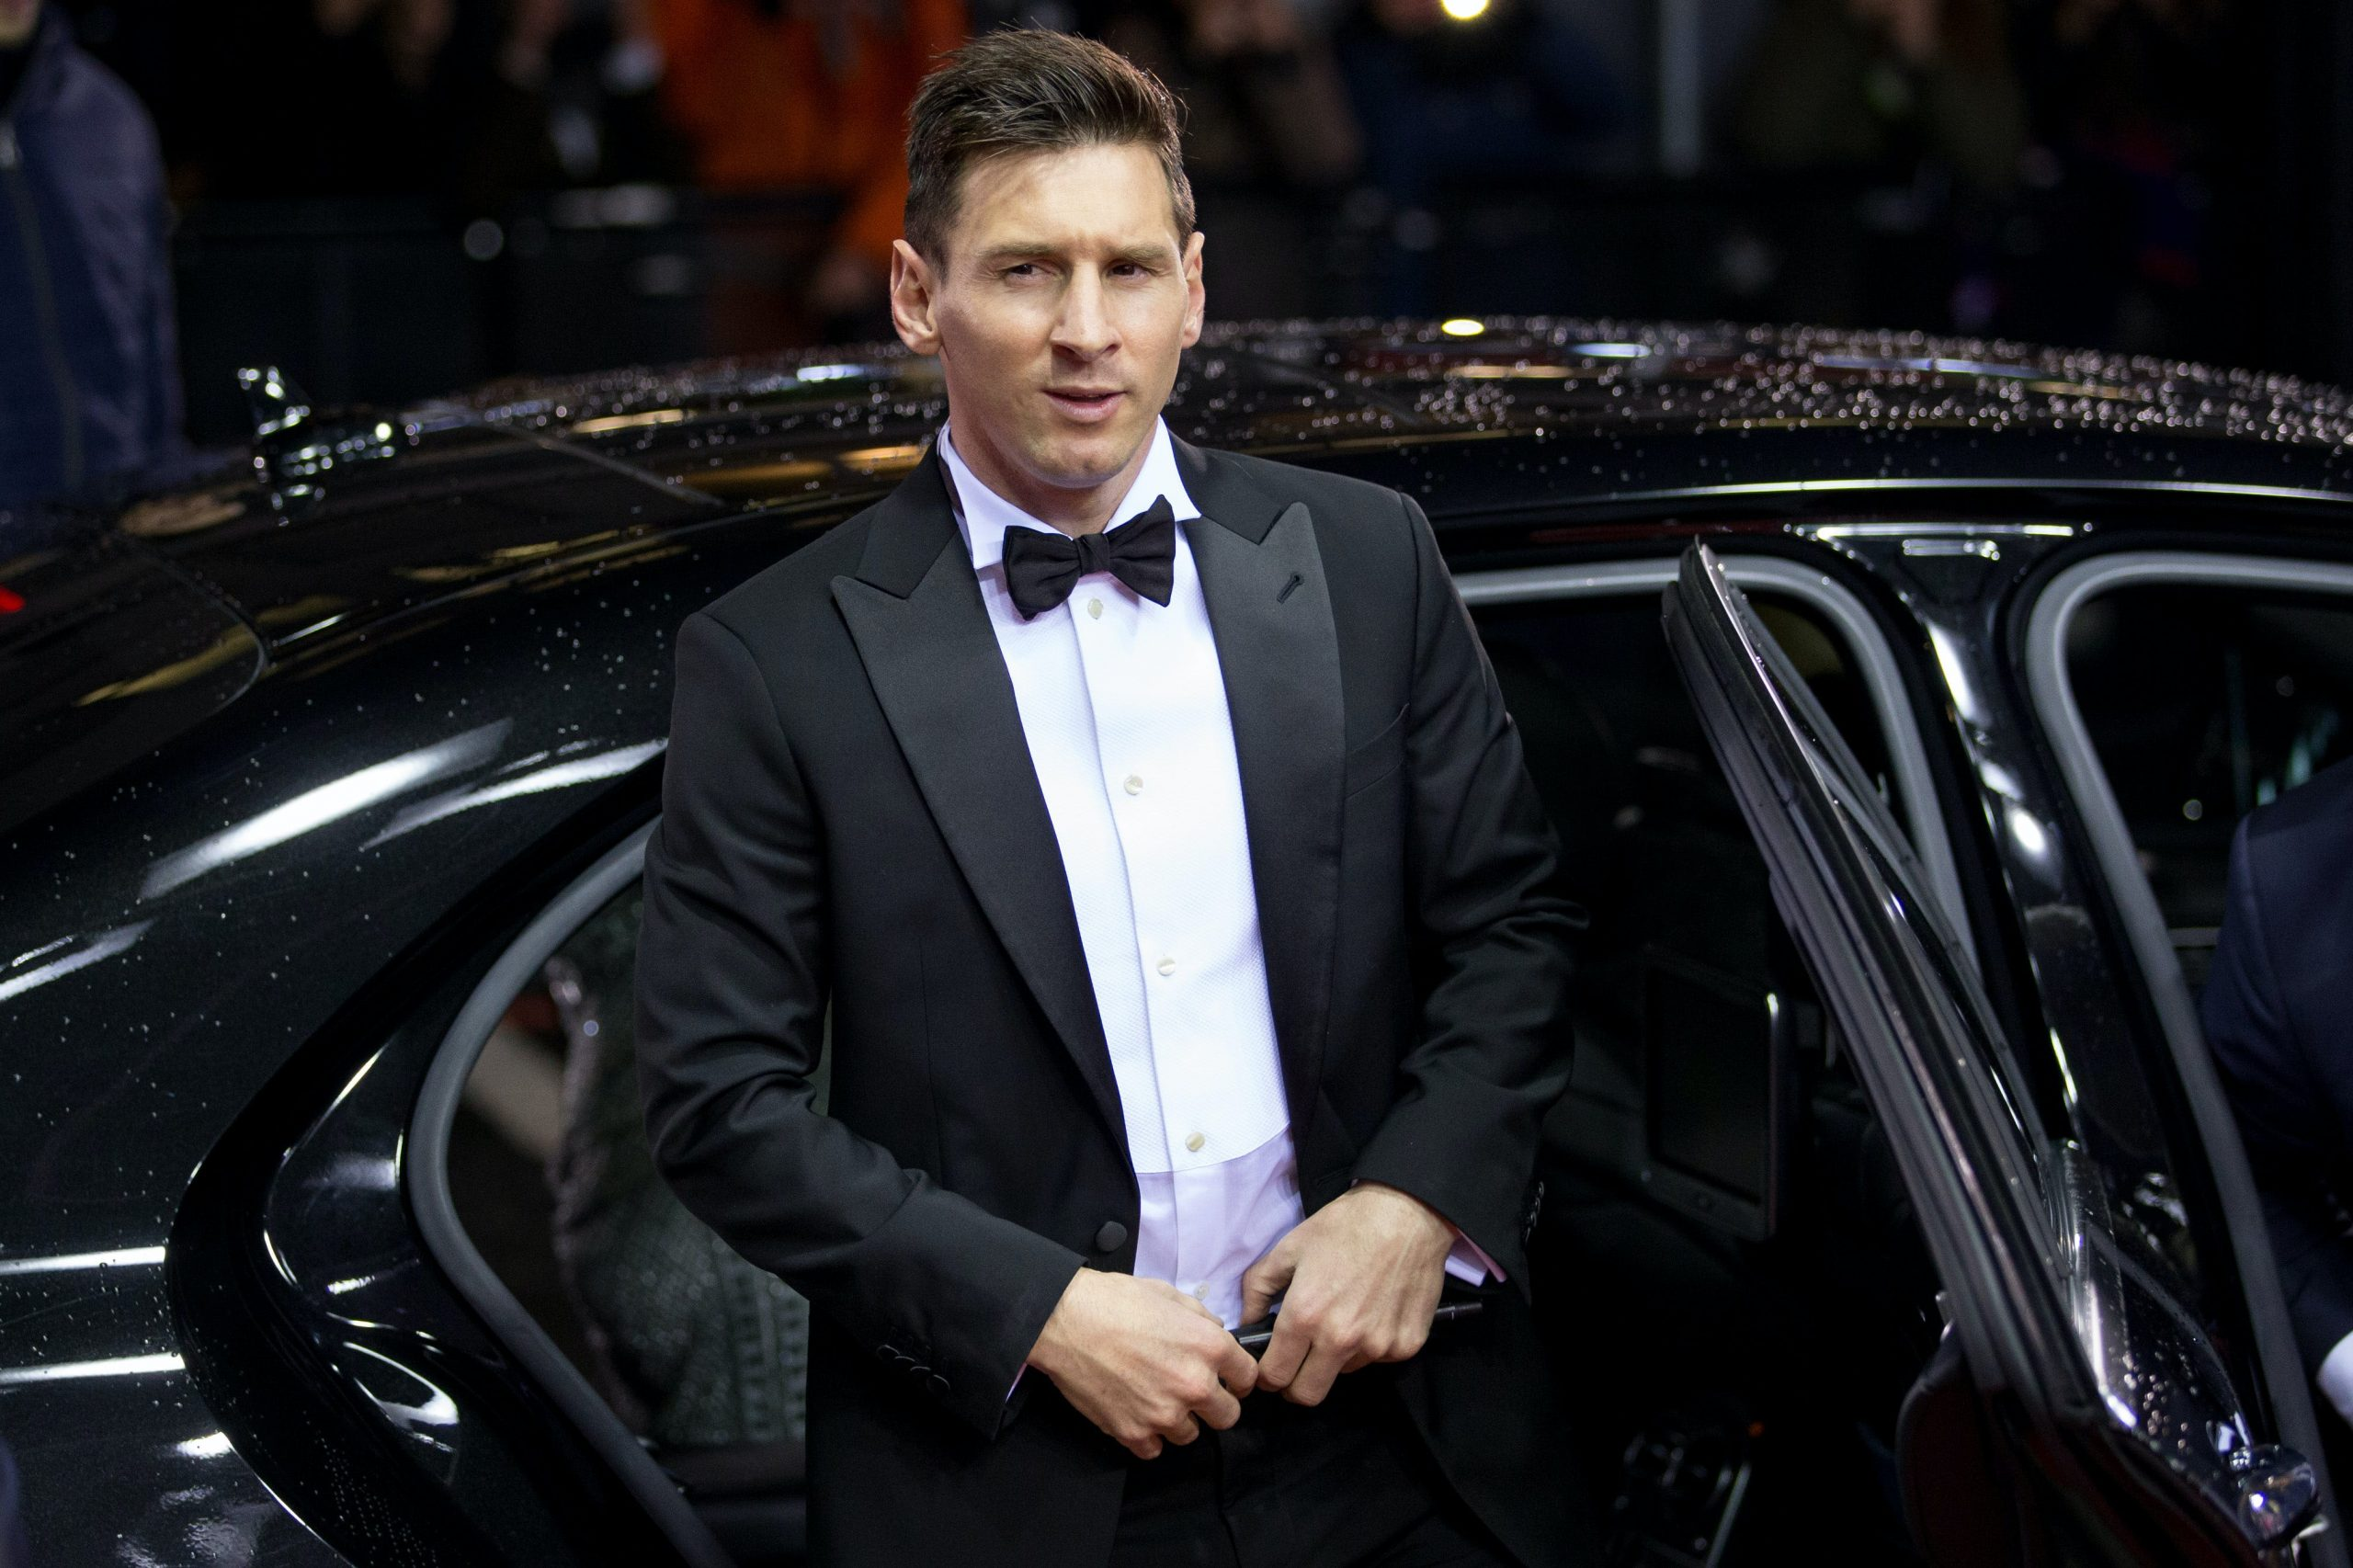 Lionel Messi staying at Barcelona is 'difficult', says father and agent Jorge